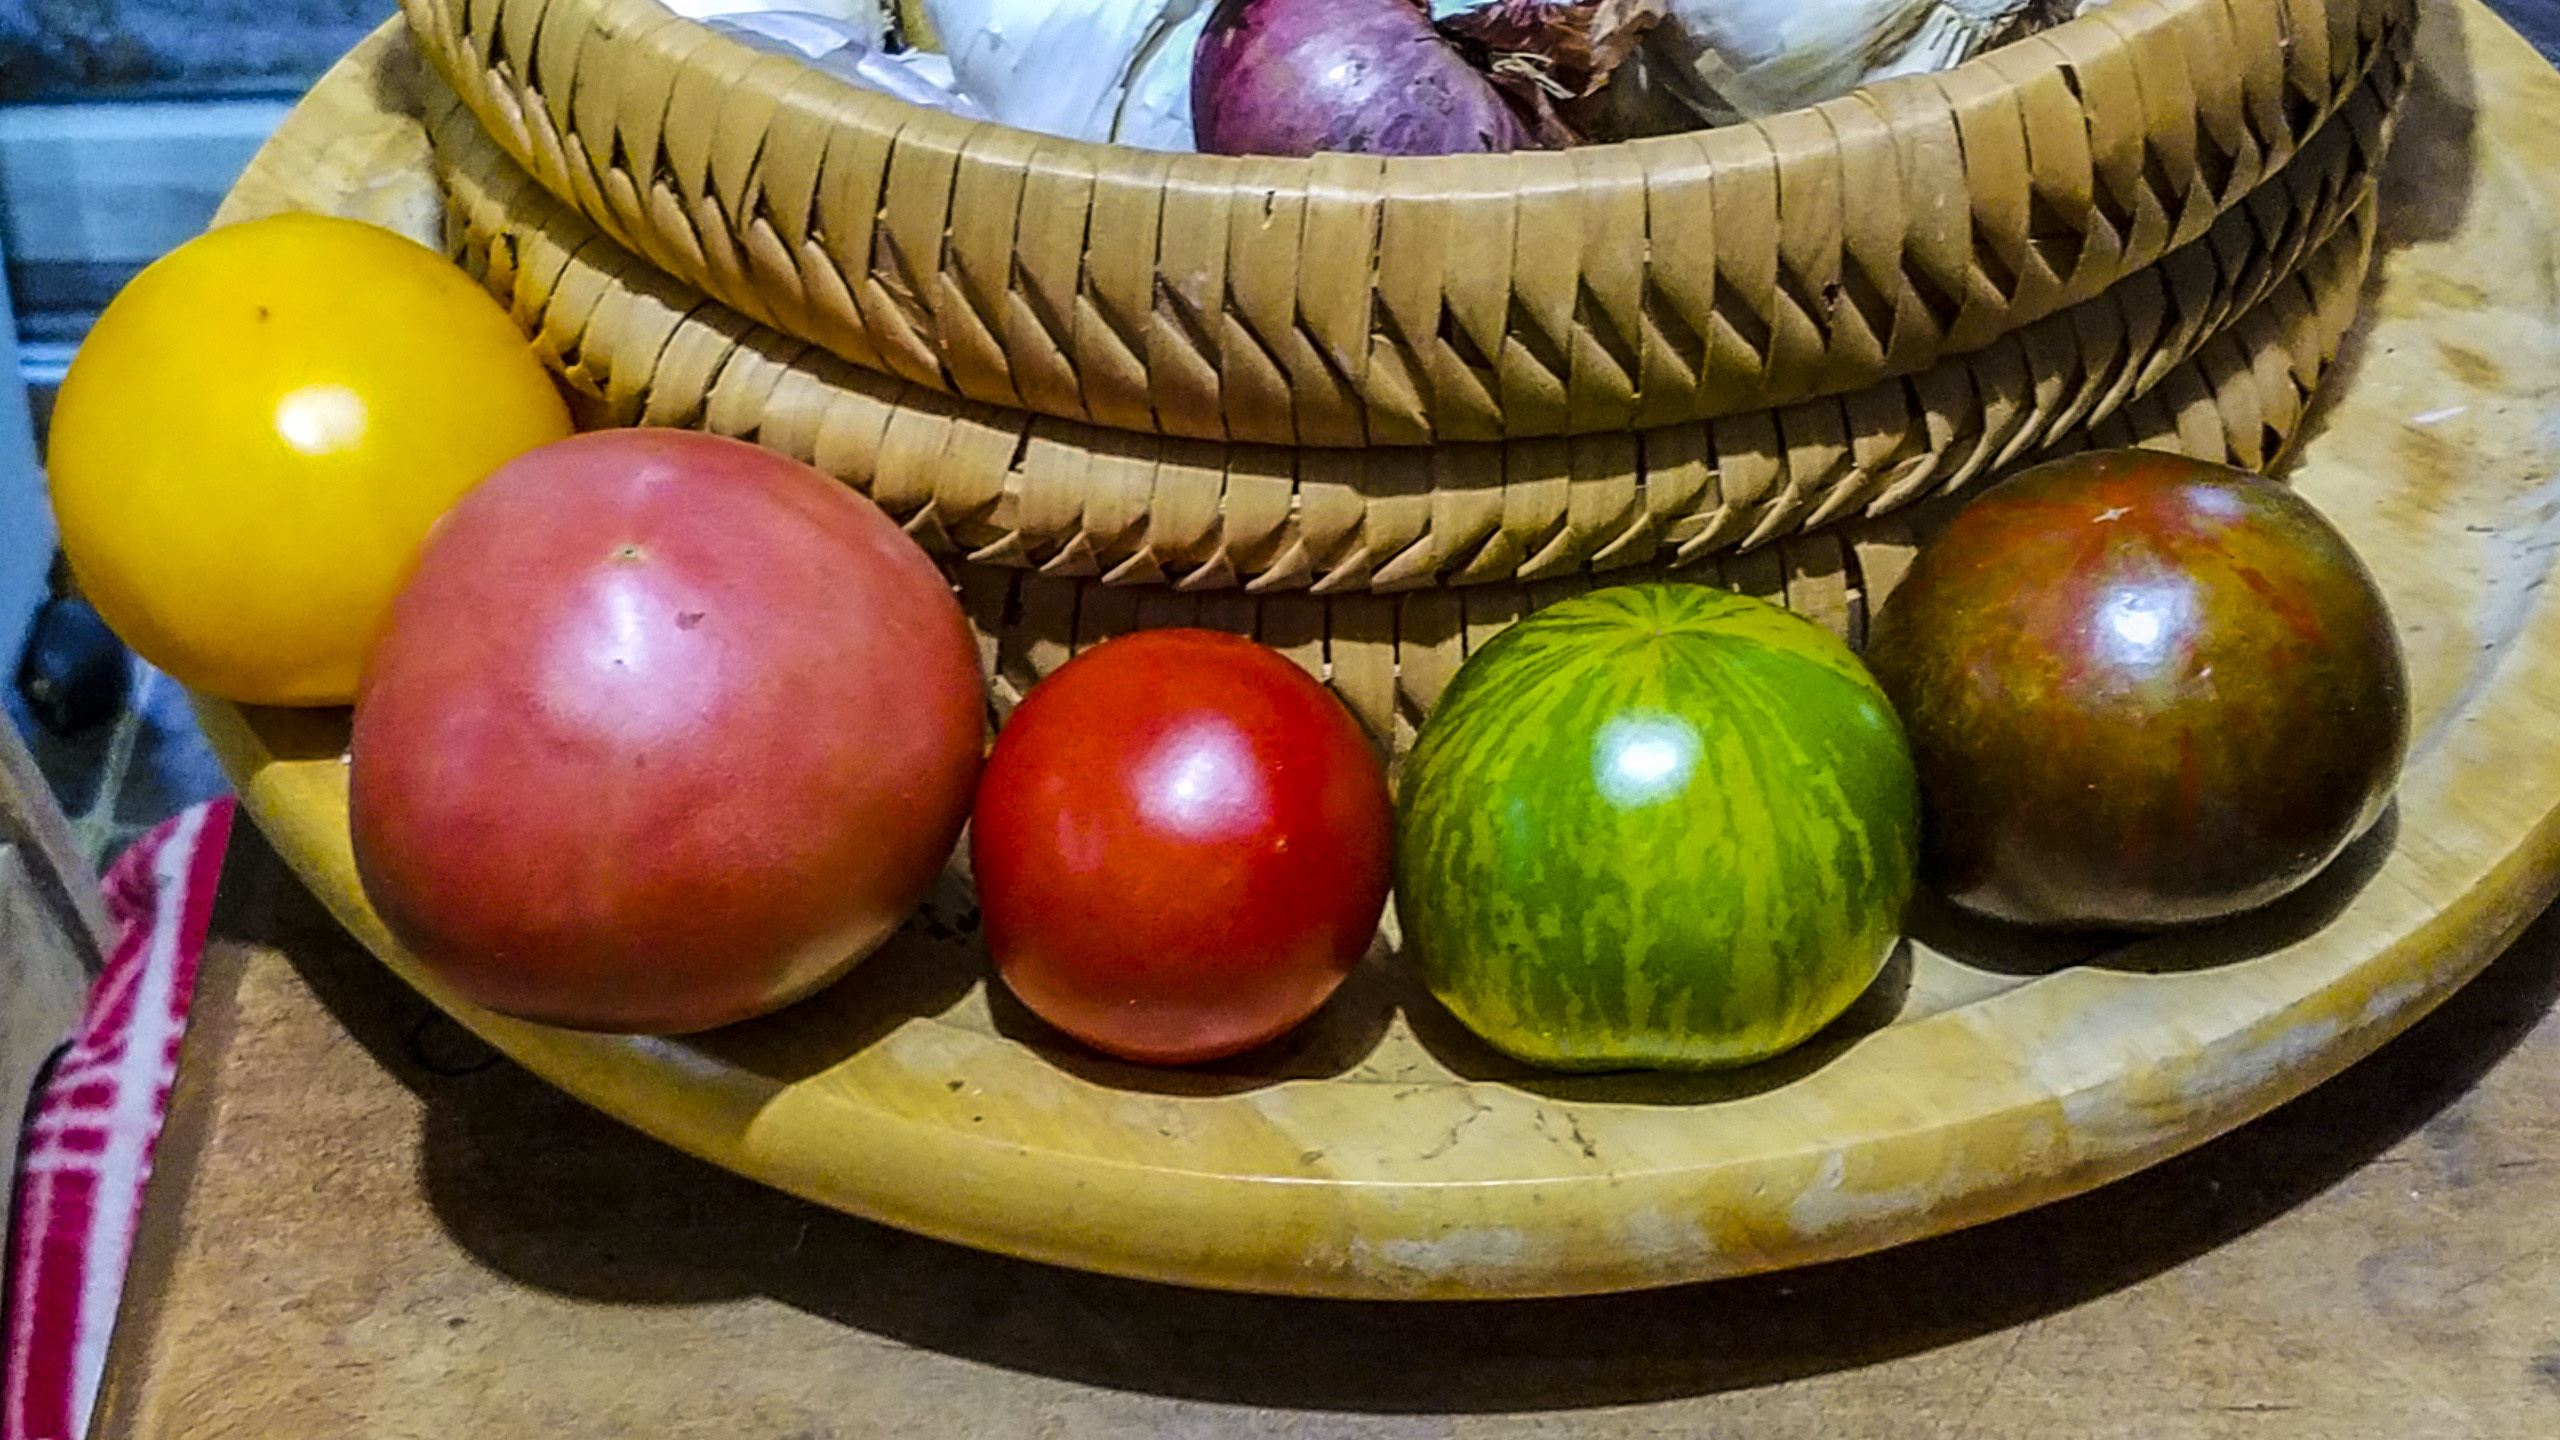 Tomatoes, a variety